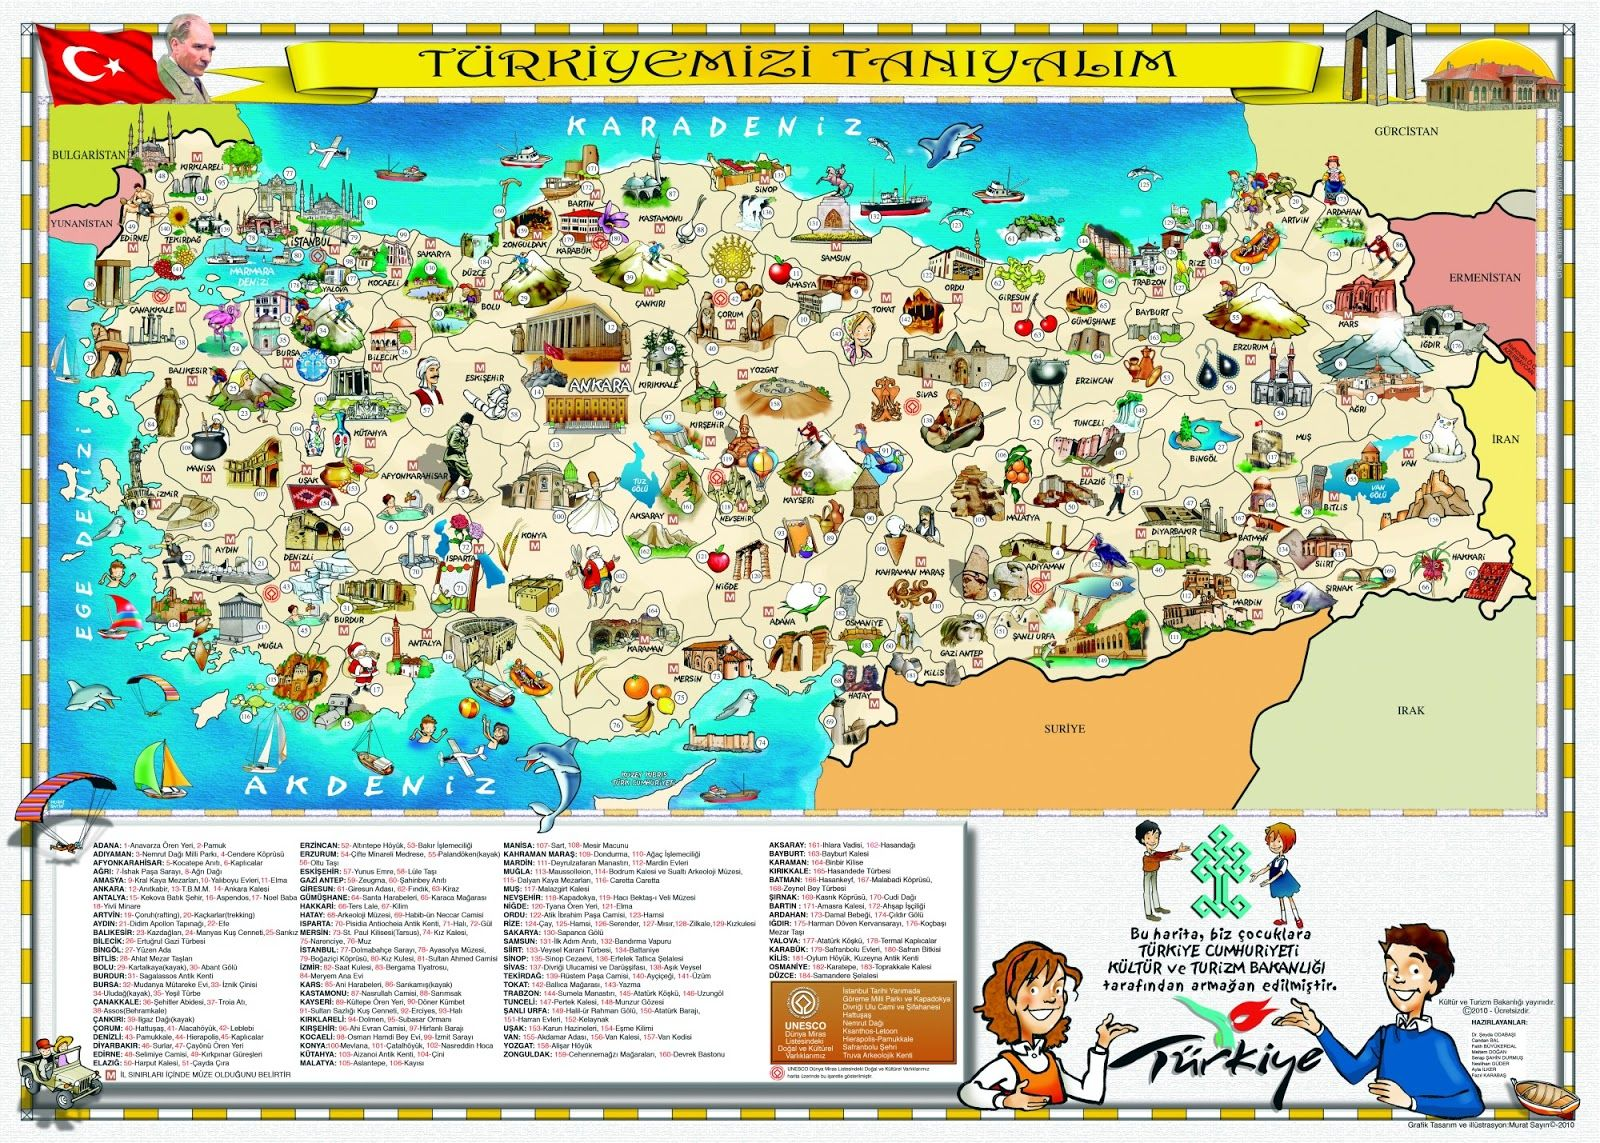 attractions maps of tourism attractions in turkey maps New Zone